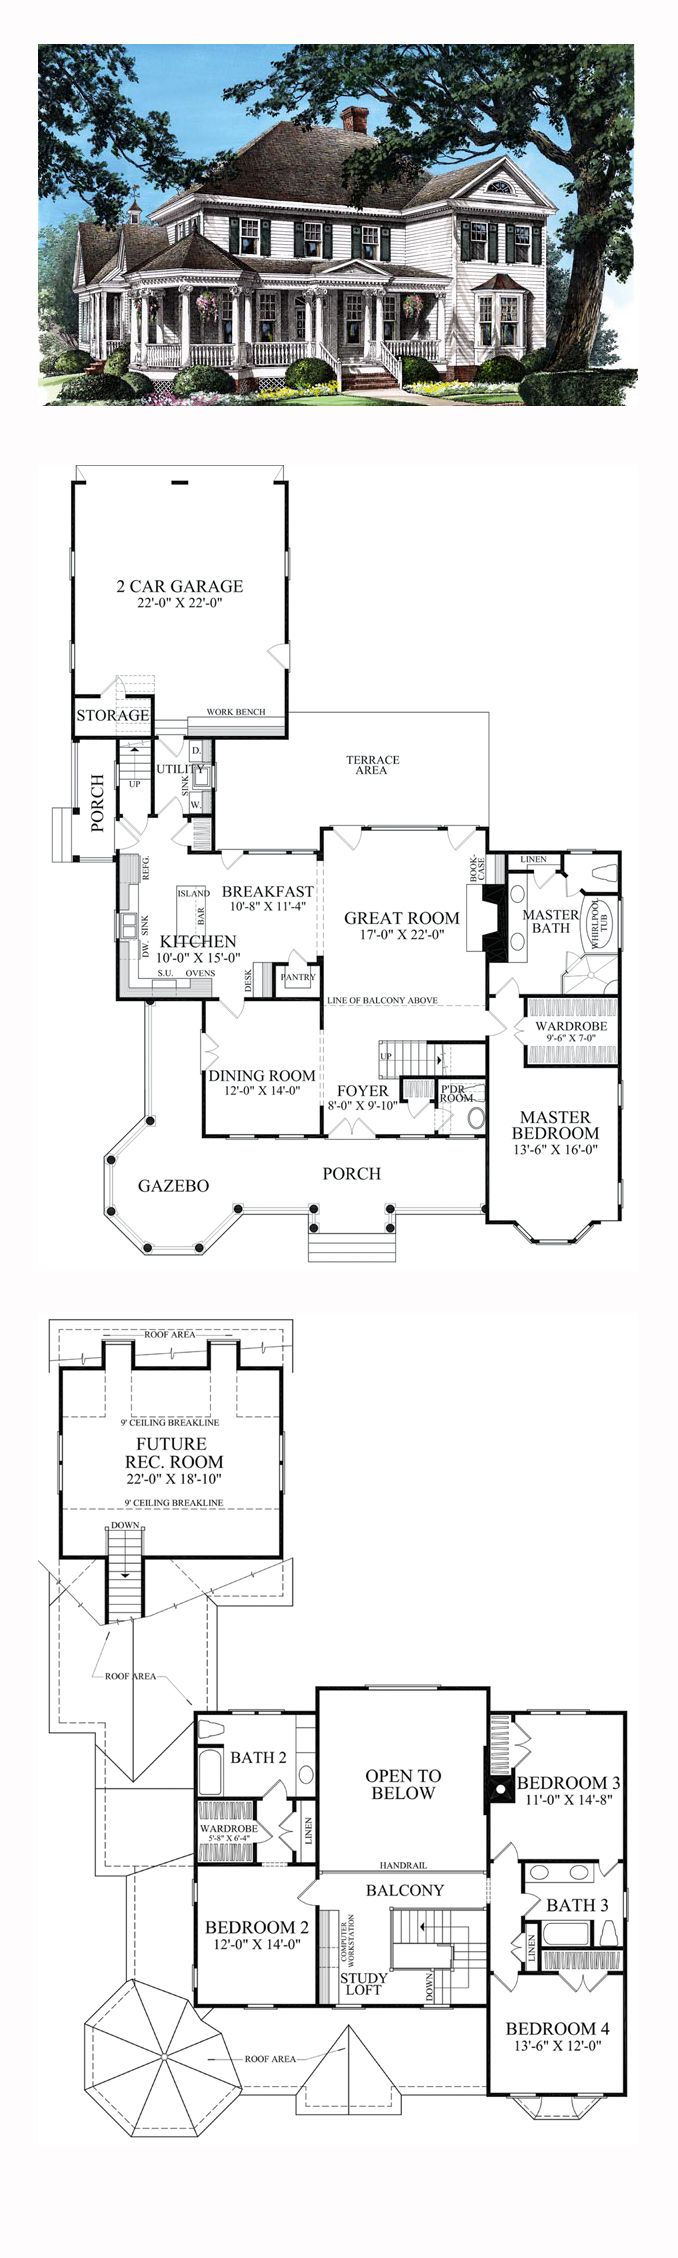 25 Best Ideas About 4 Bedroom House Plans On Pinterest Blue Open Plan Bathrooms House Plans And Open Floor House Plans